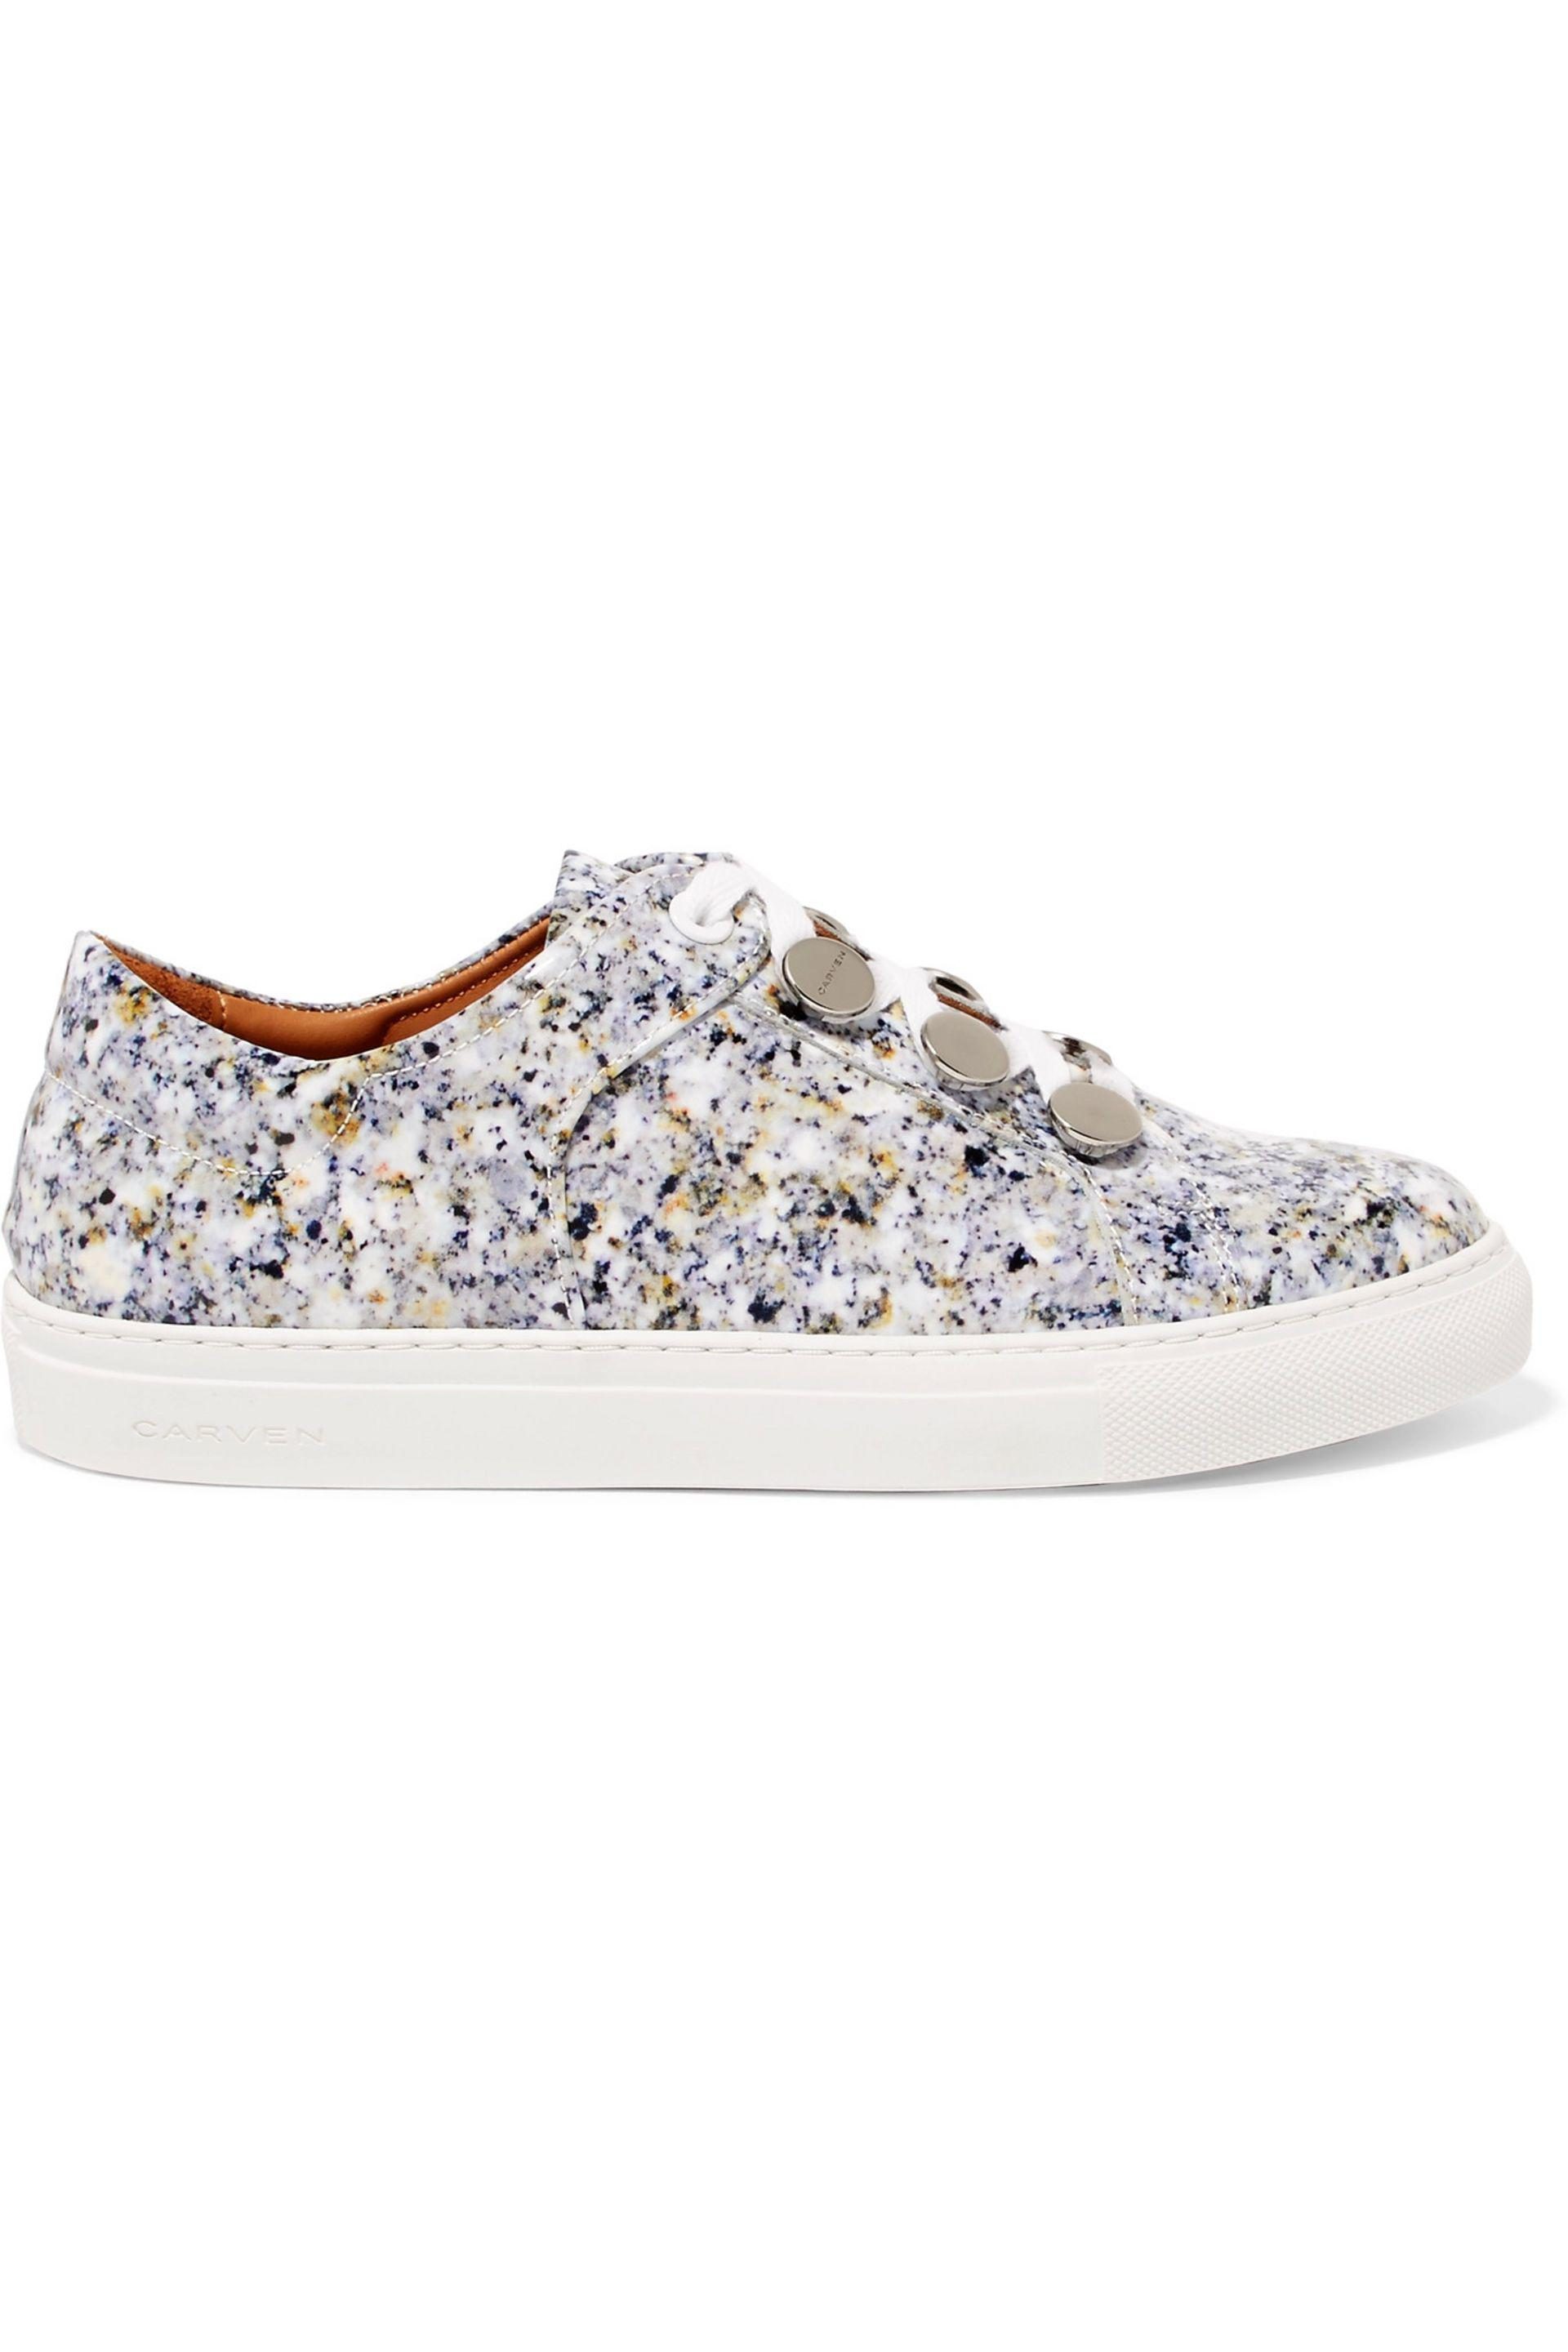 Carven. Women's Resonance Printed Patent-leather Trainers